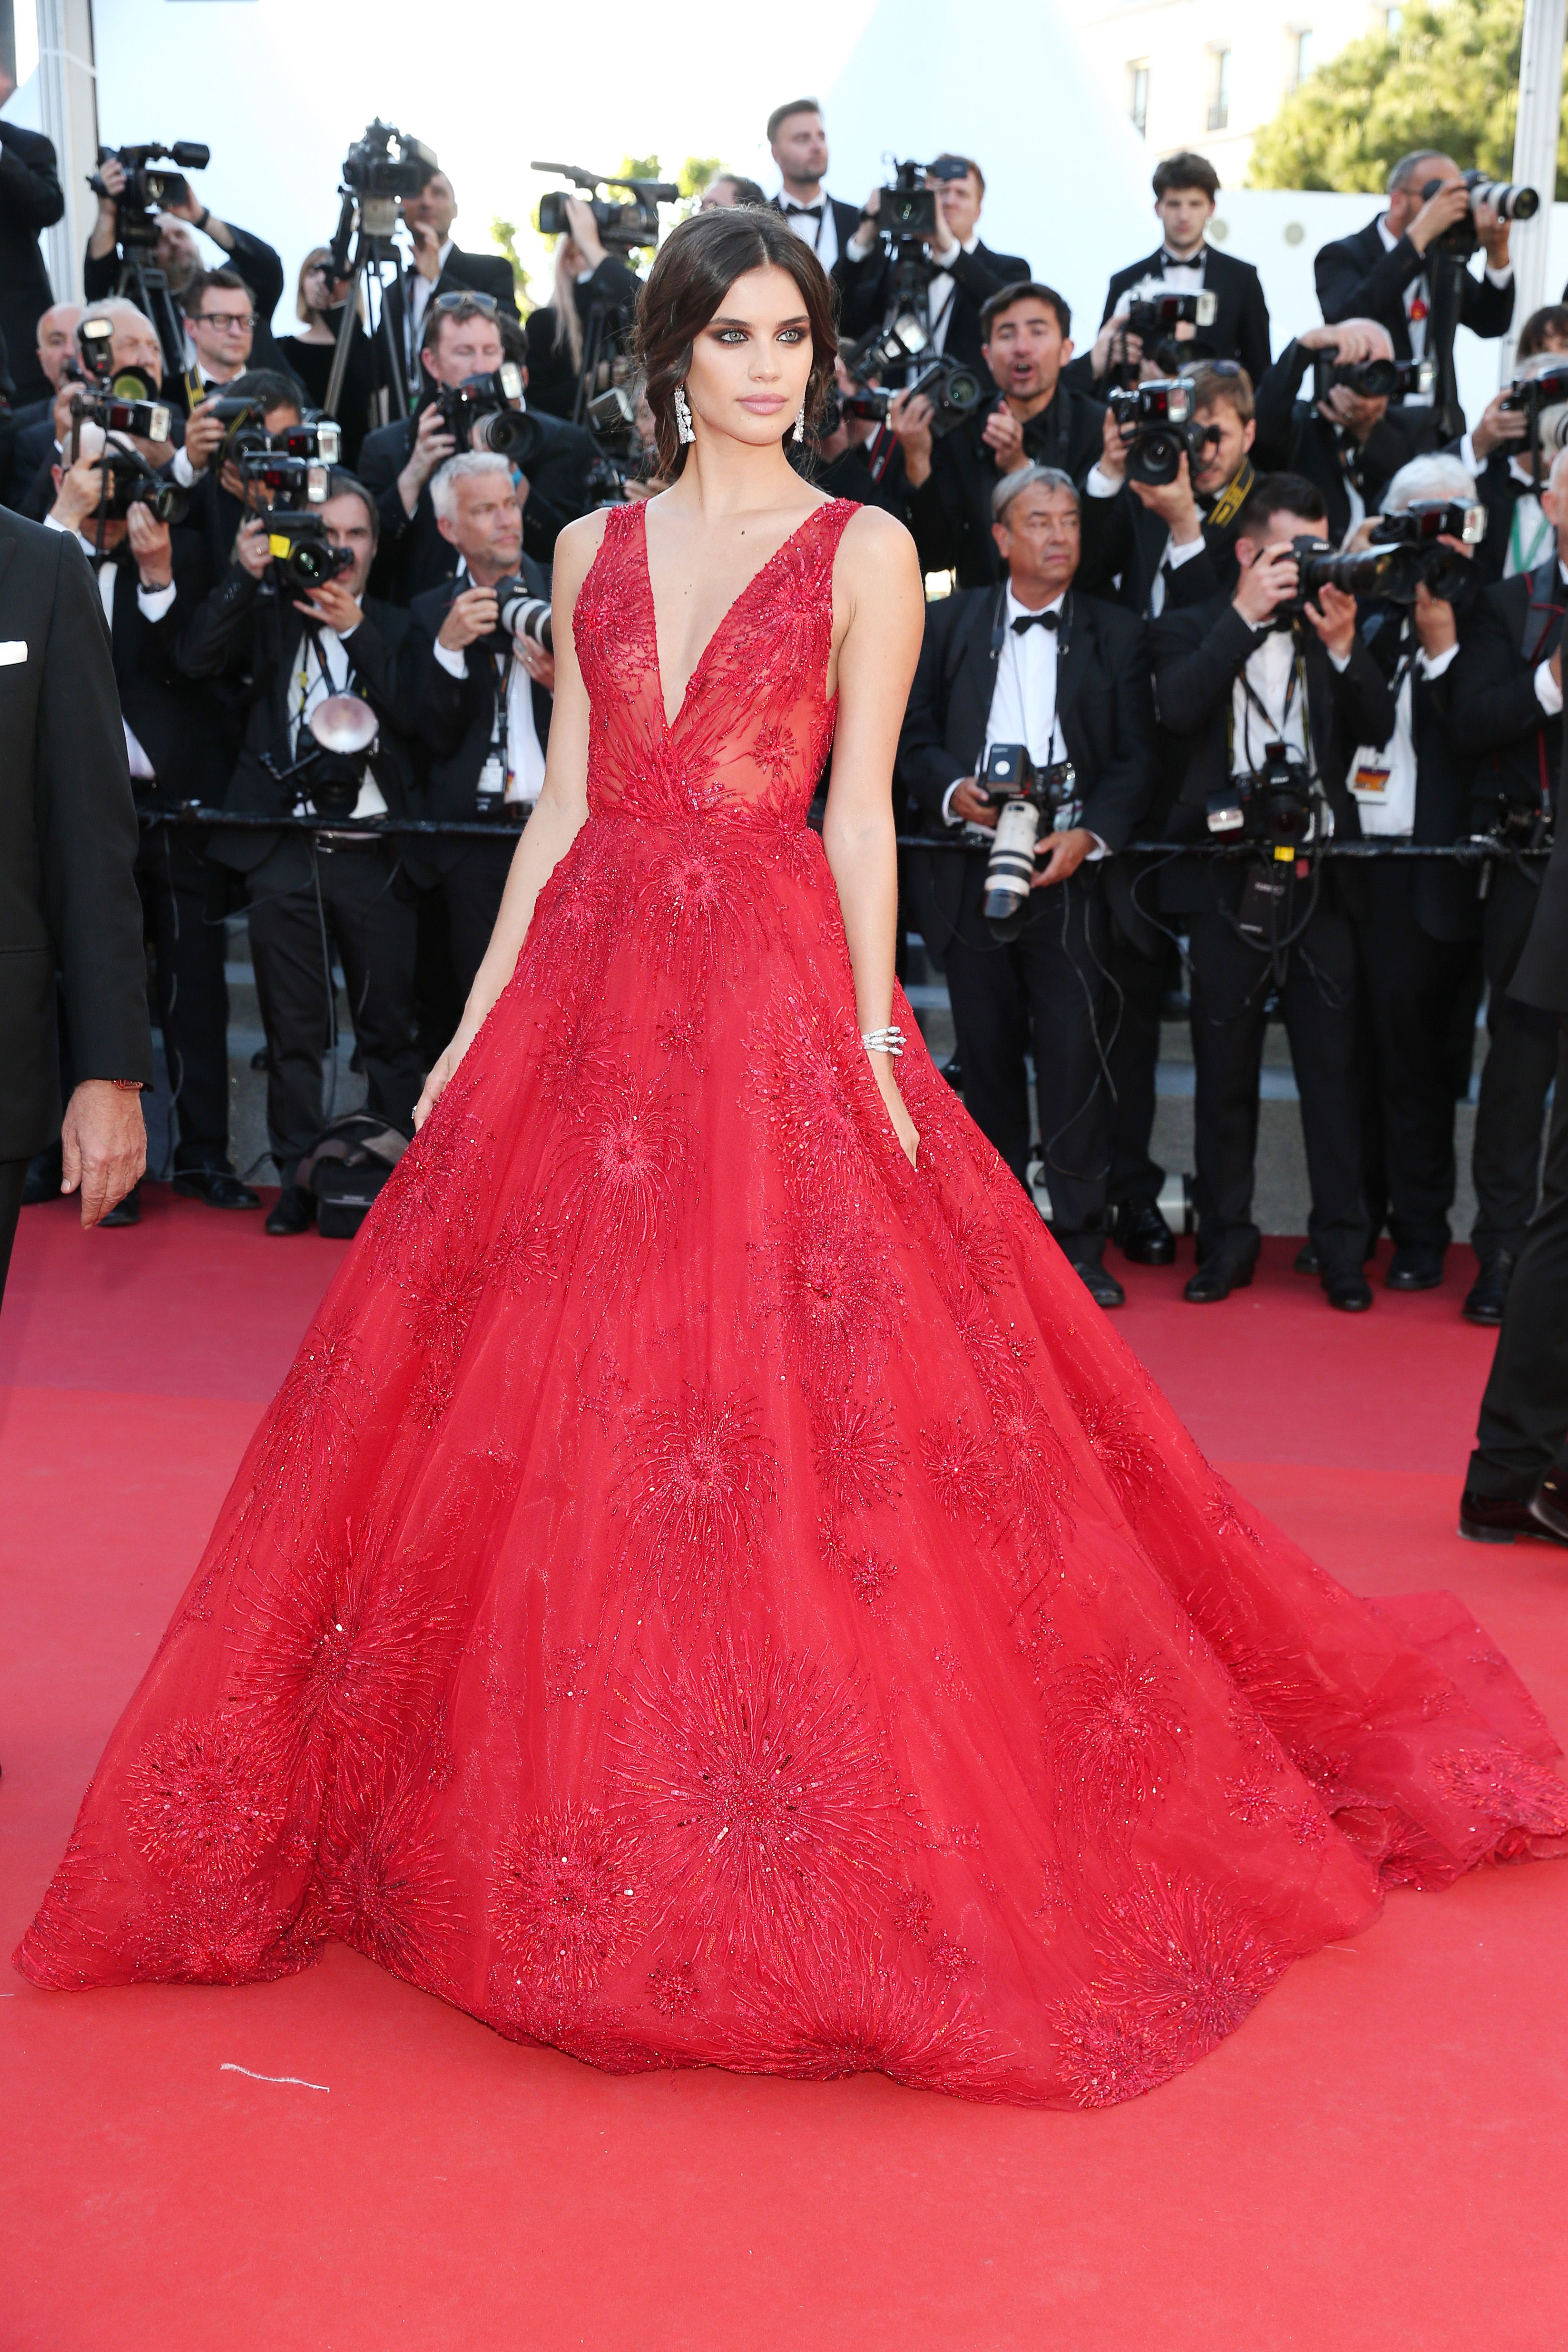 The Best Red Carpet Looks From the 2017 Cannes Film Festival  0fa6d9b2e19b